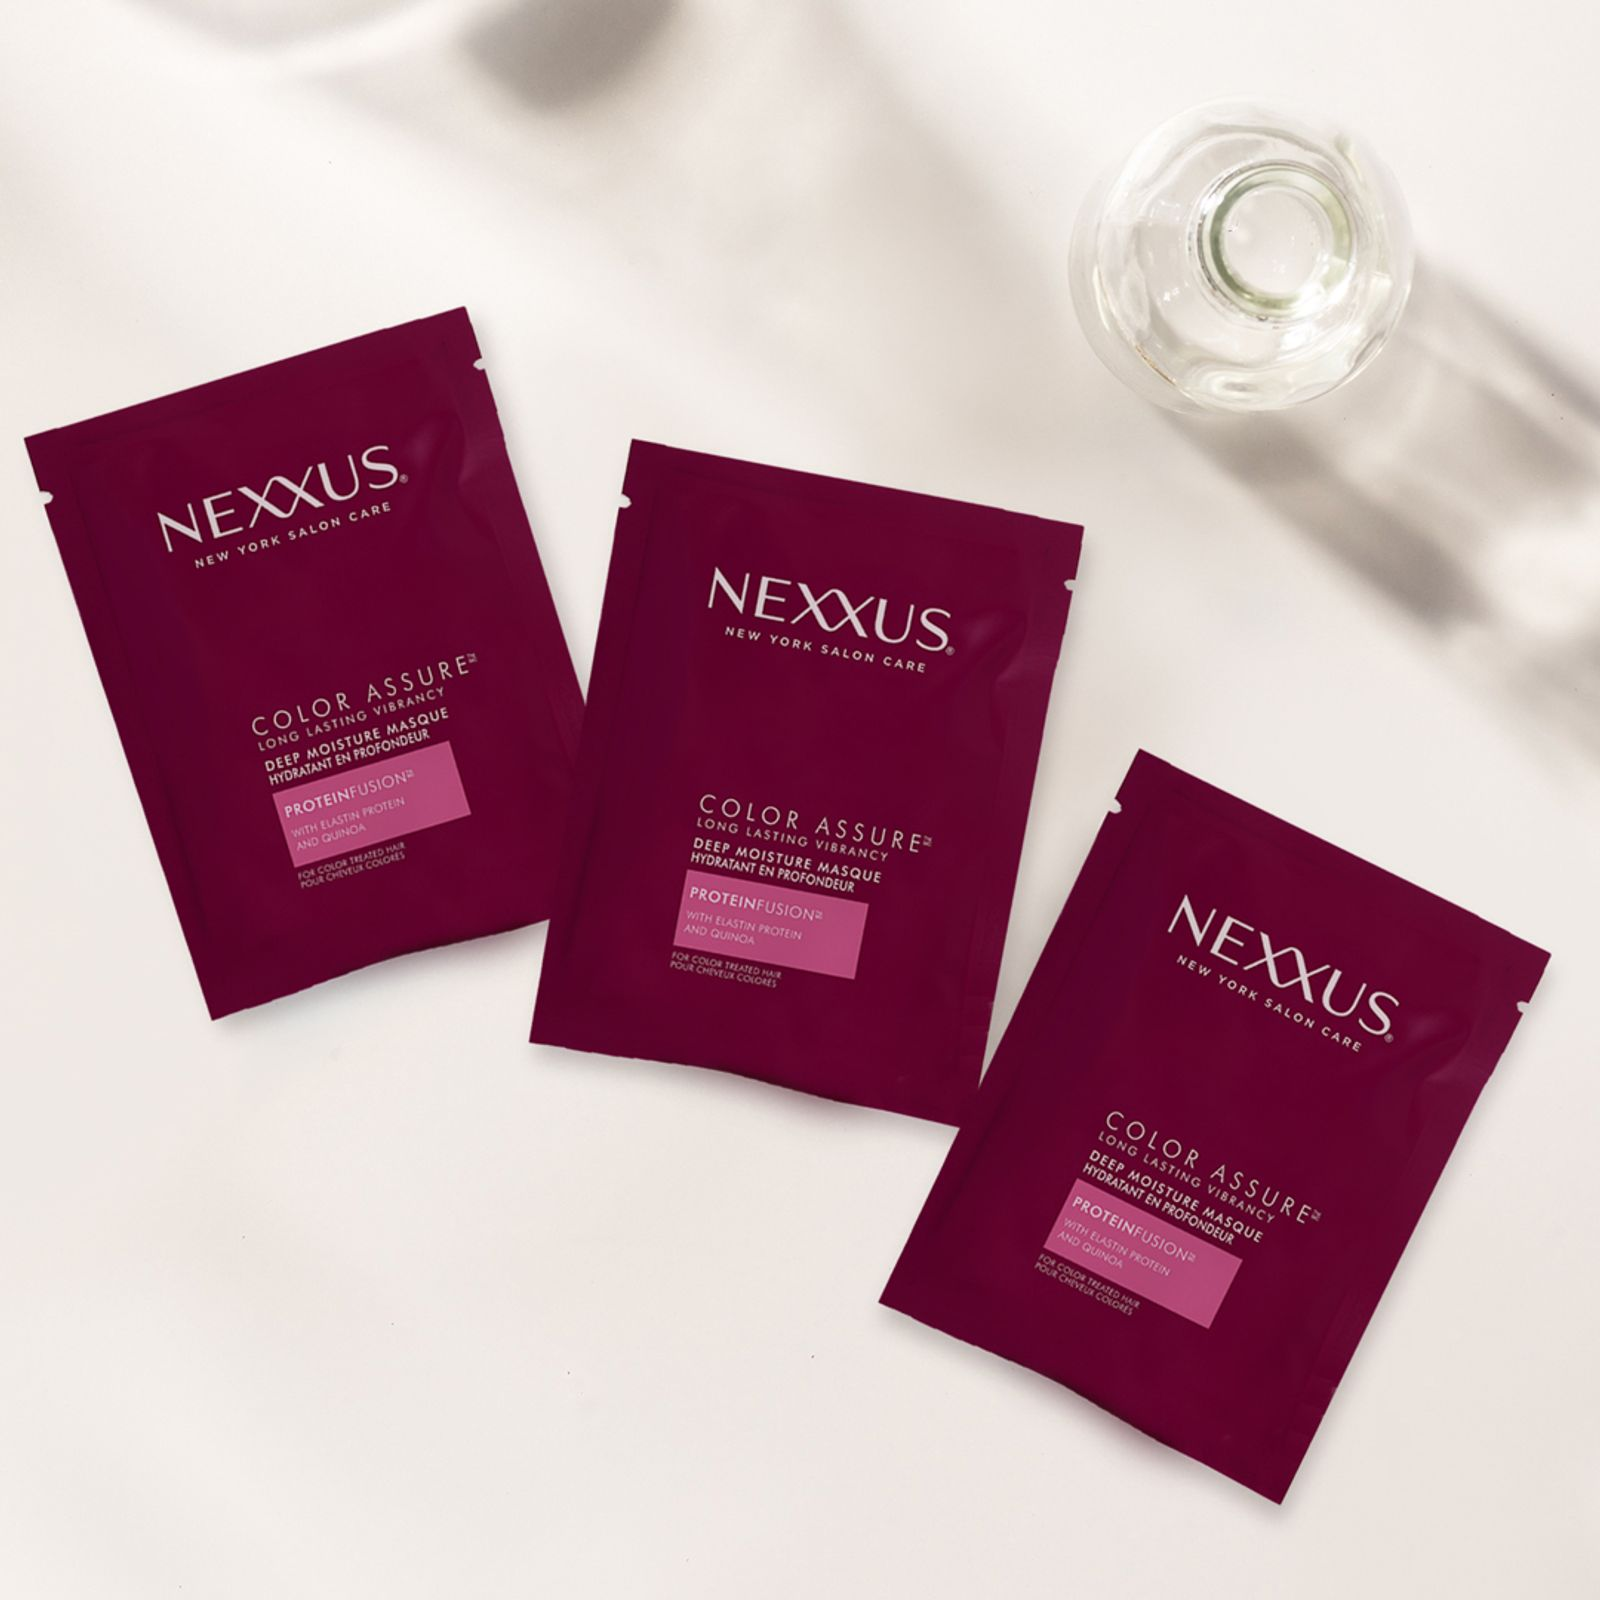 Nexxus Color Assure Long Lasting Vibrancy Deep Moisture Hair Mask Product Shot